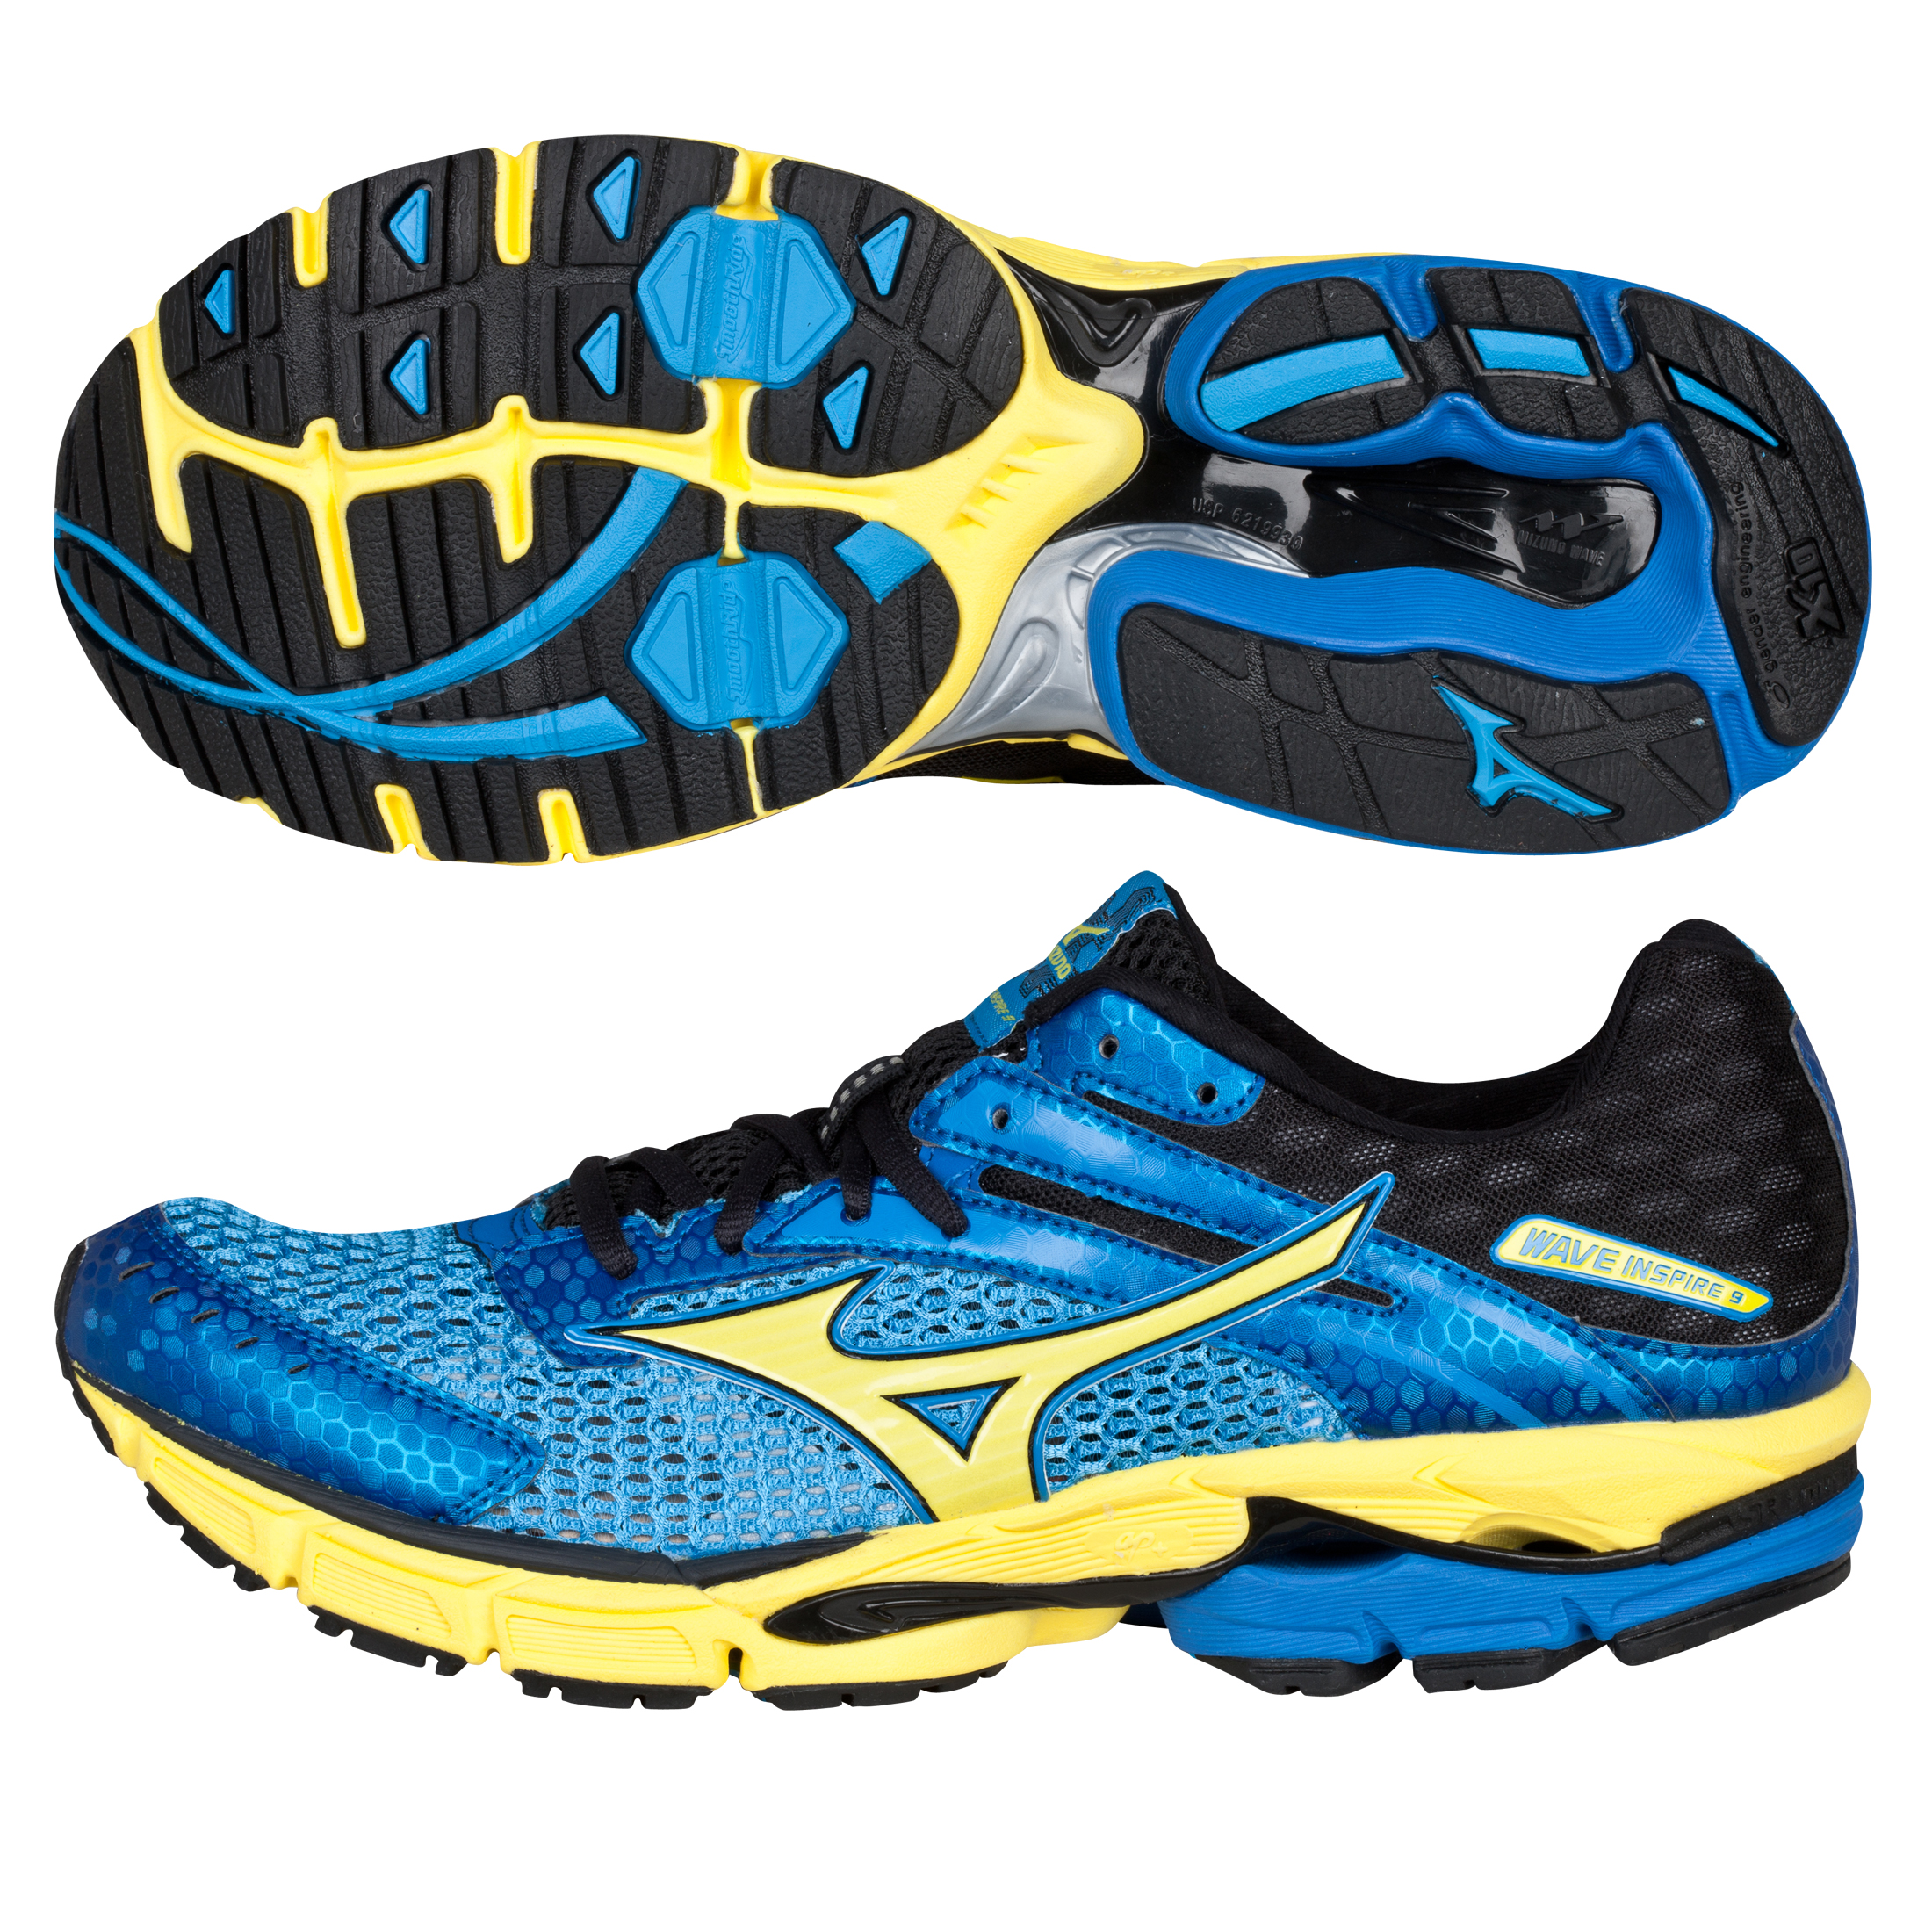 Mizuno Wave Inspire 9 Trainer - Malibu Blue/Blazing Yellow/Anthracite